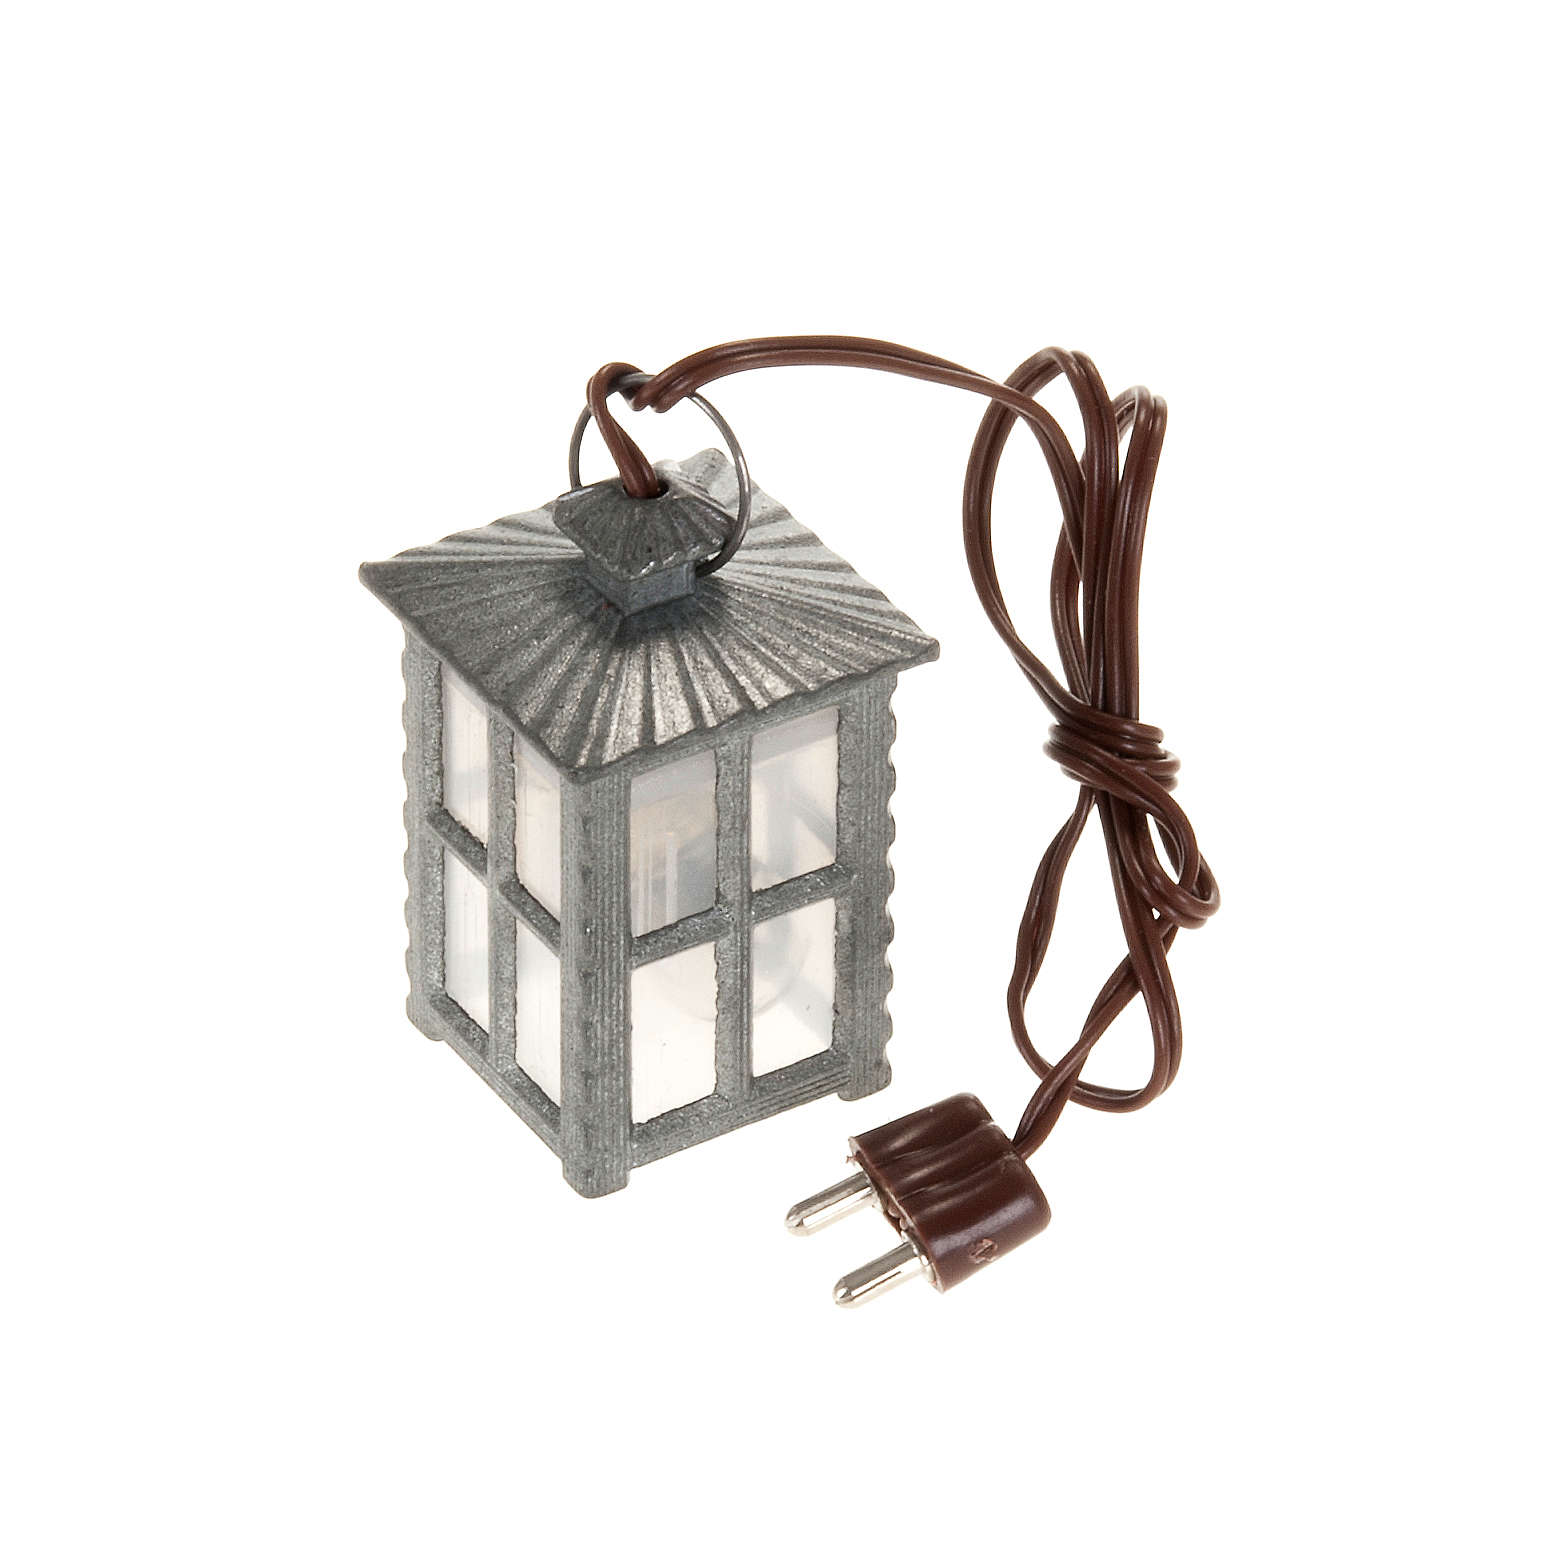 Metal lamp with white light, 4cm 4